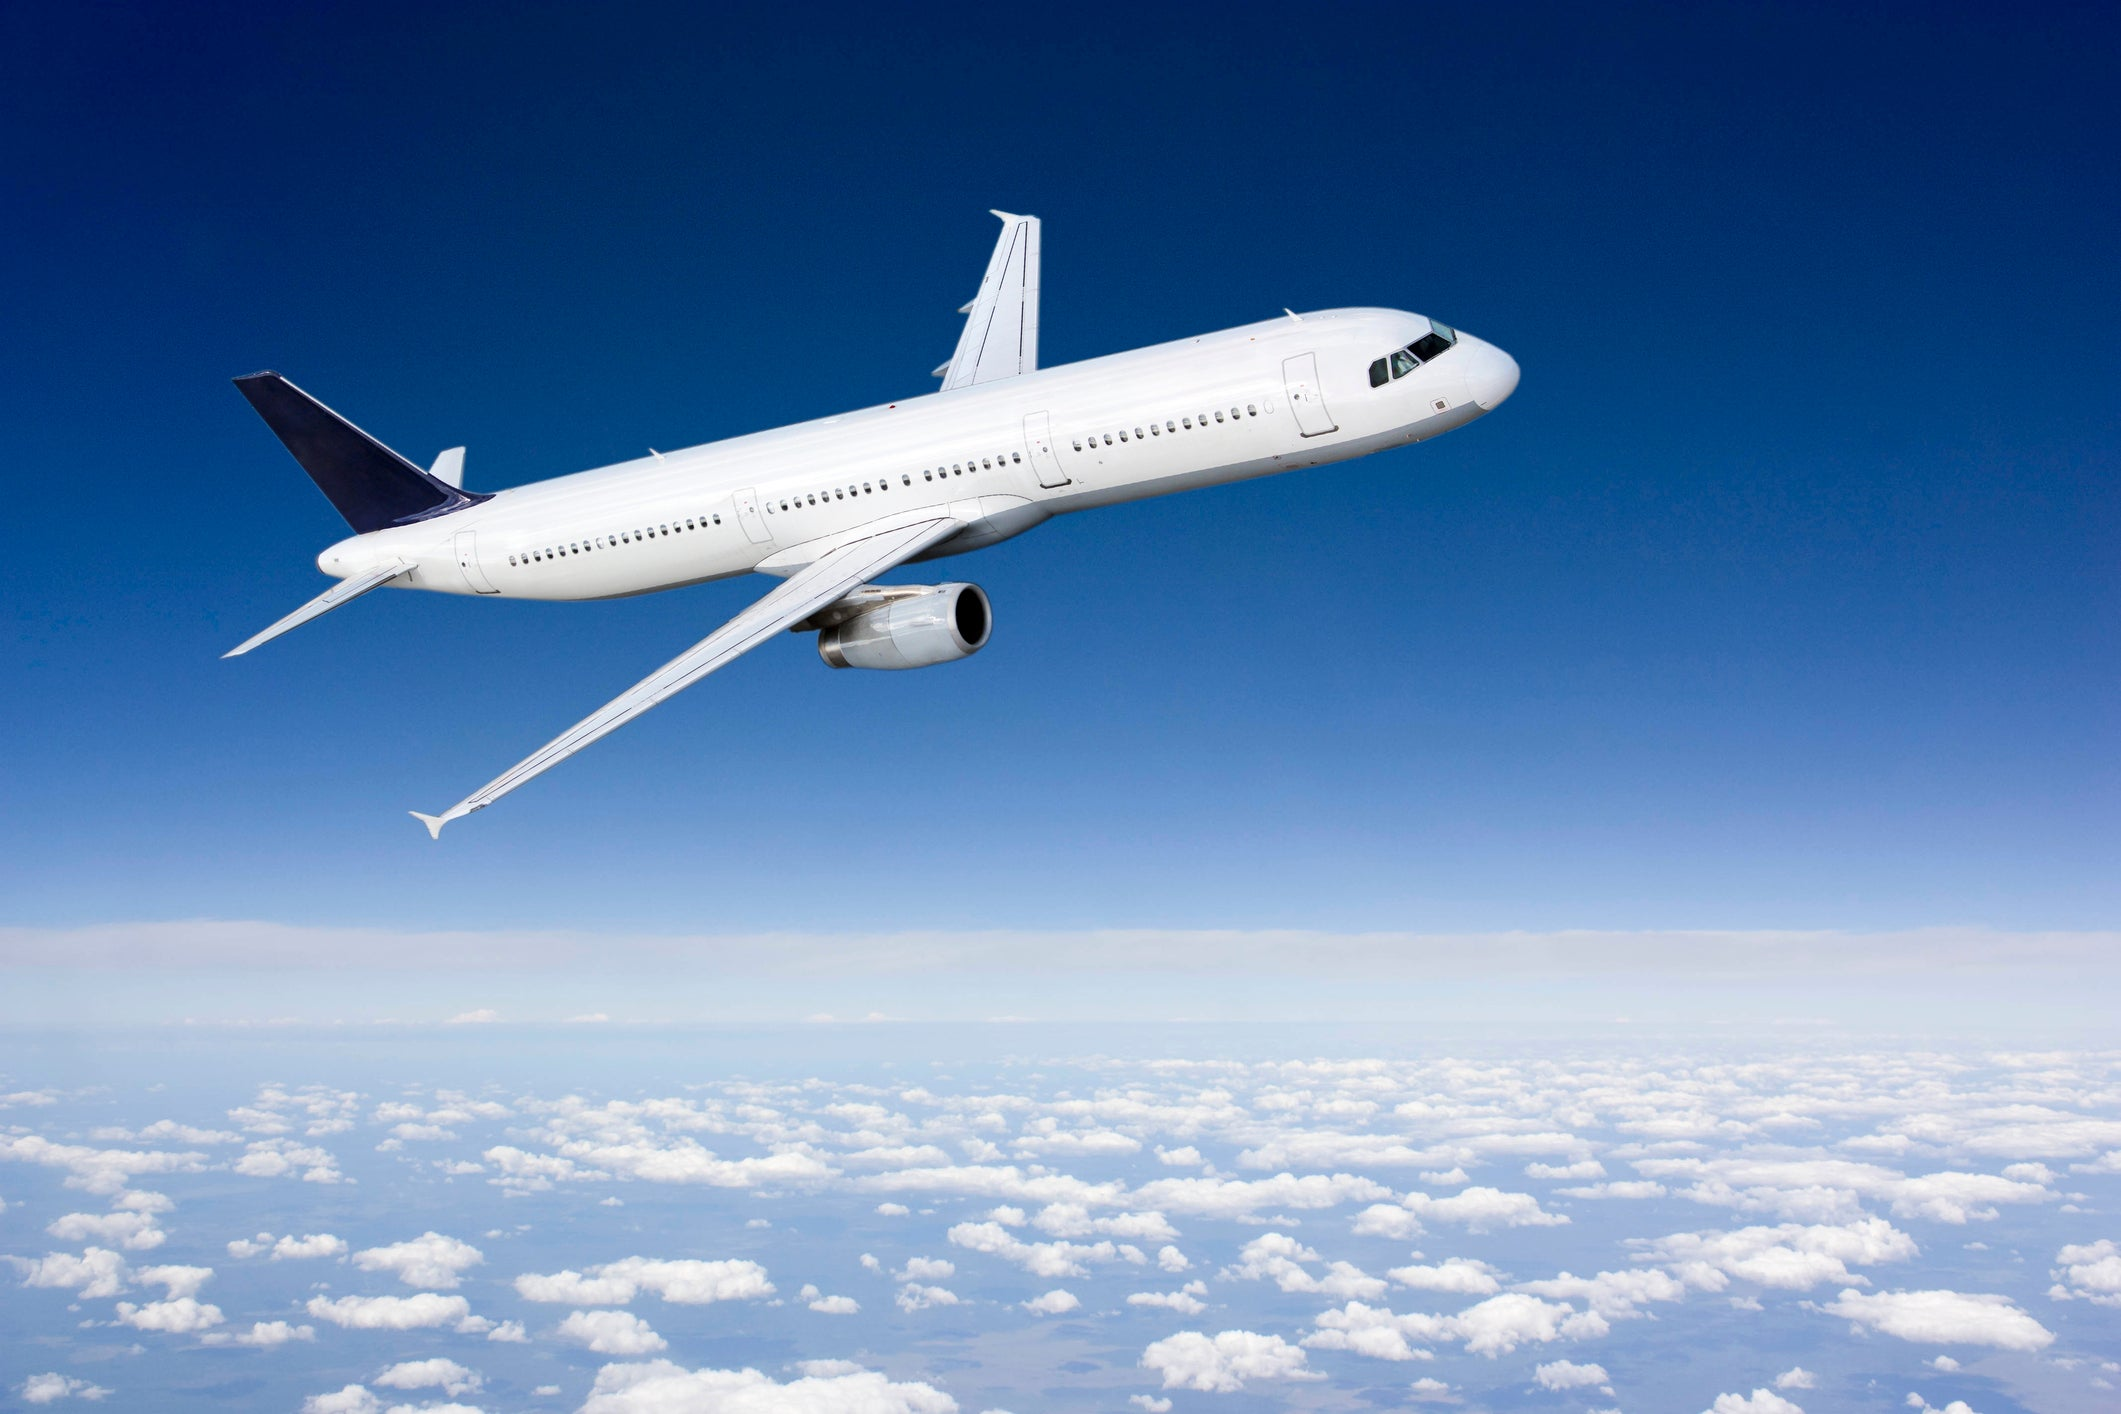 Major Airline Stocks Soar: Should You Sell? | The Motley Fool